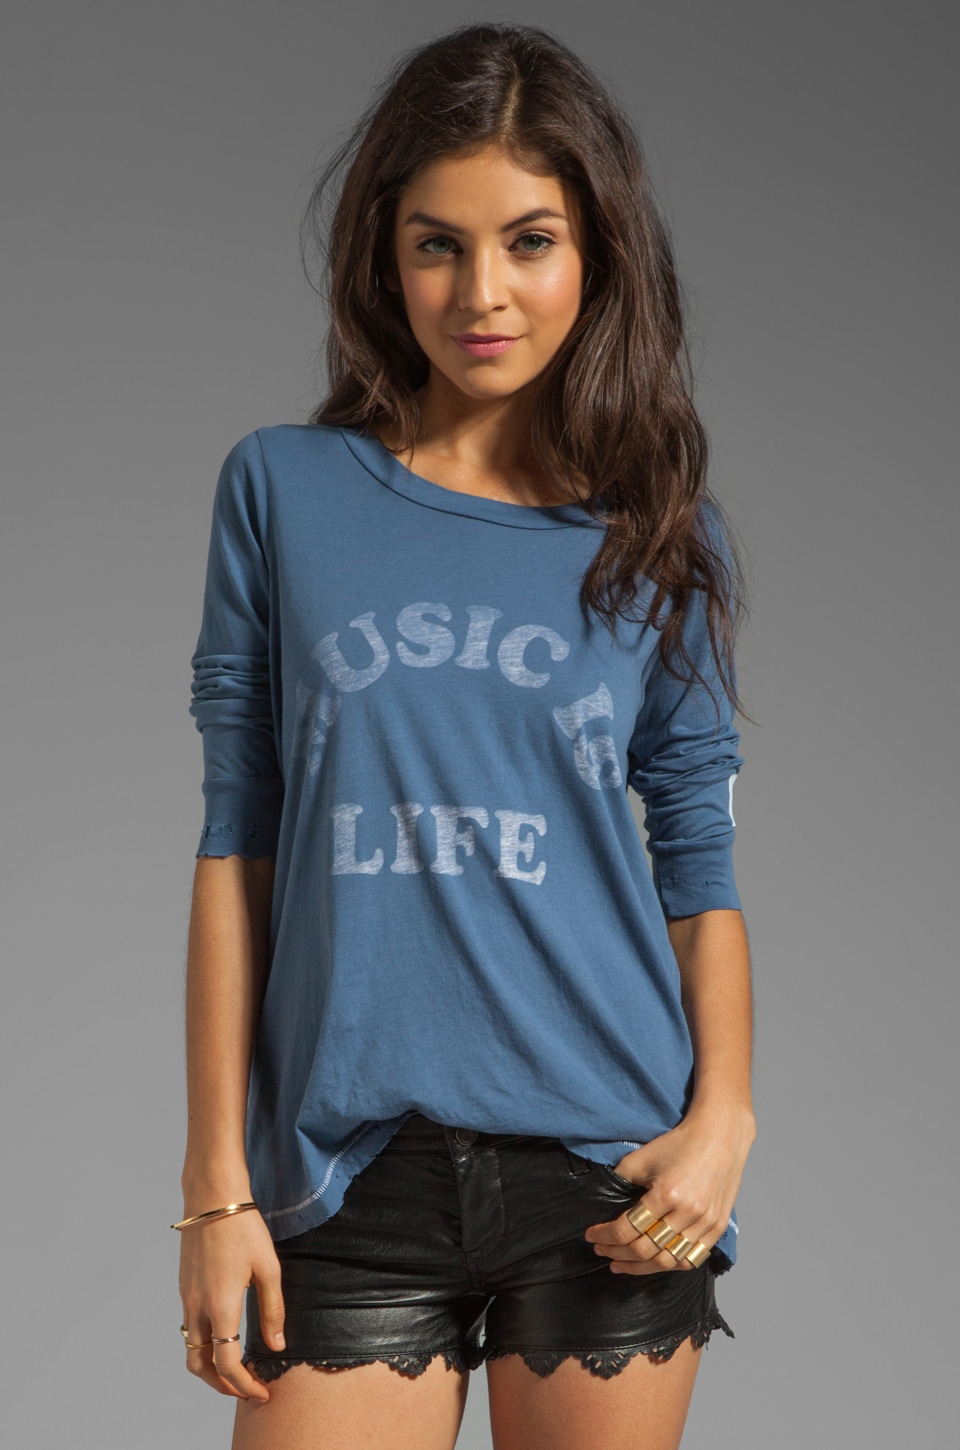 Rebel Yell Cross Country Crew in Blue Jean